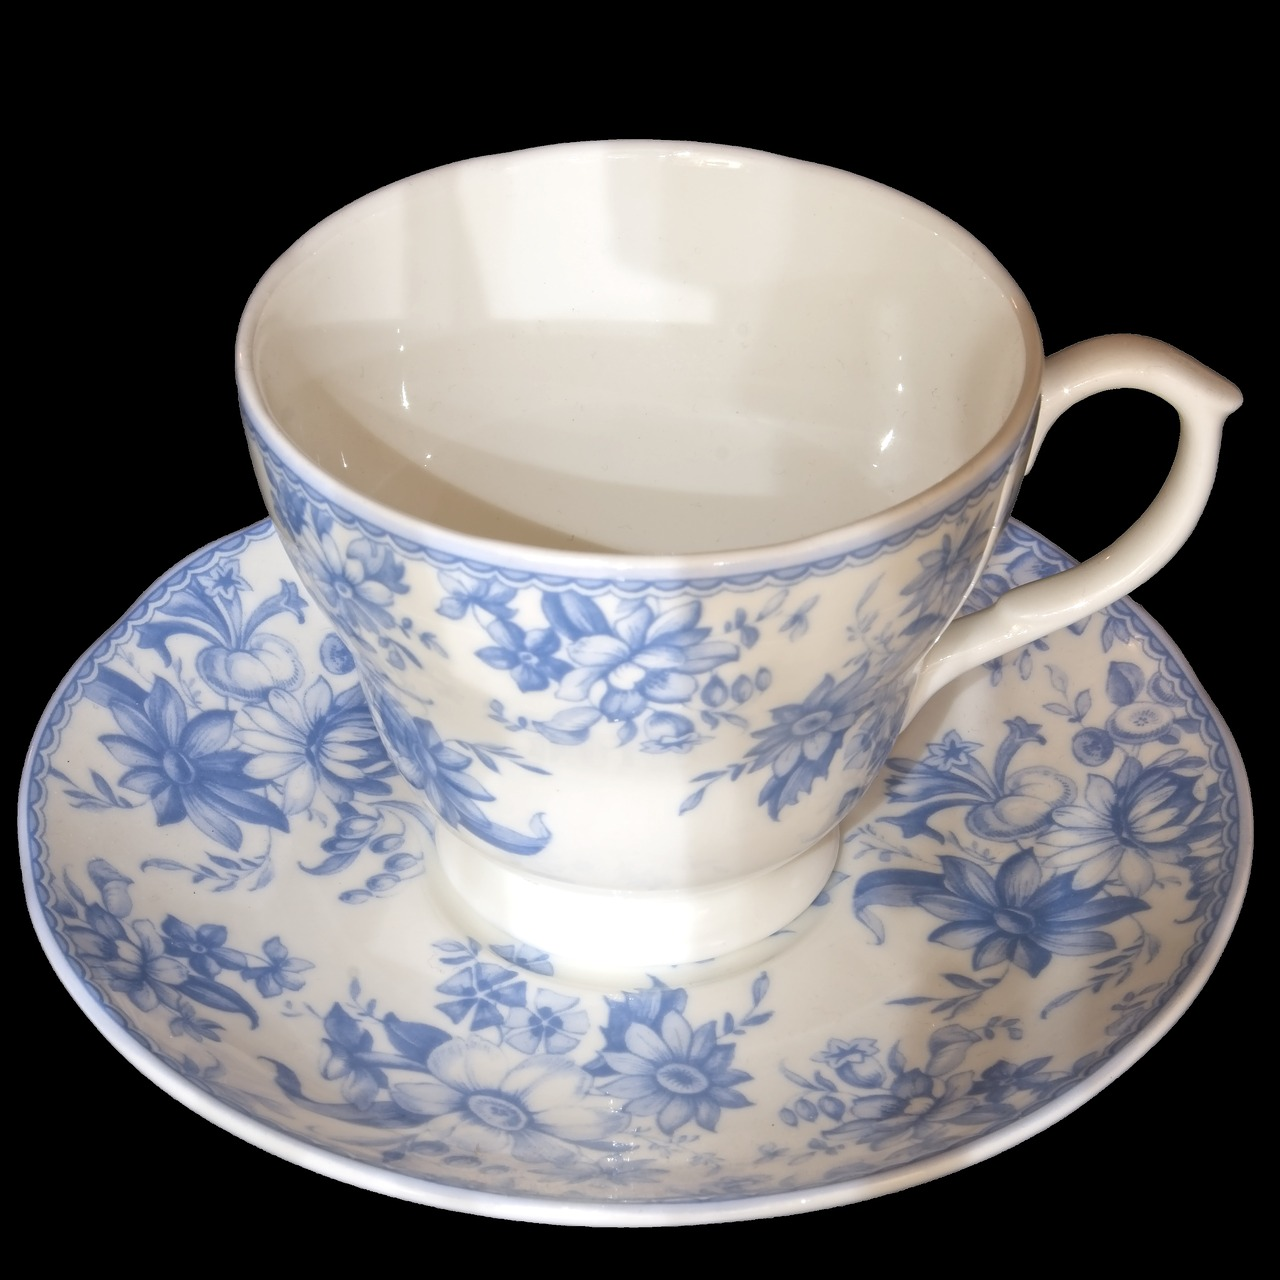 cup and saucer  white and blue china  cup free photo